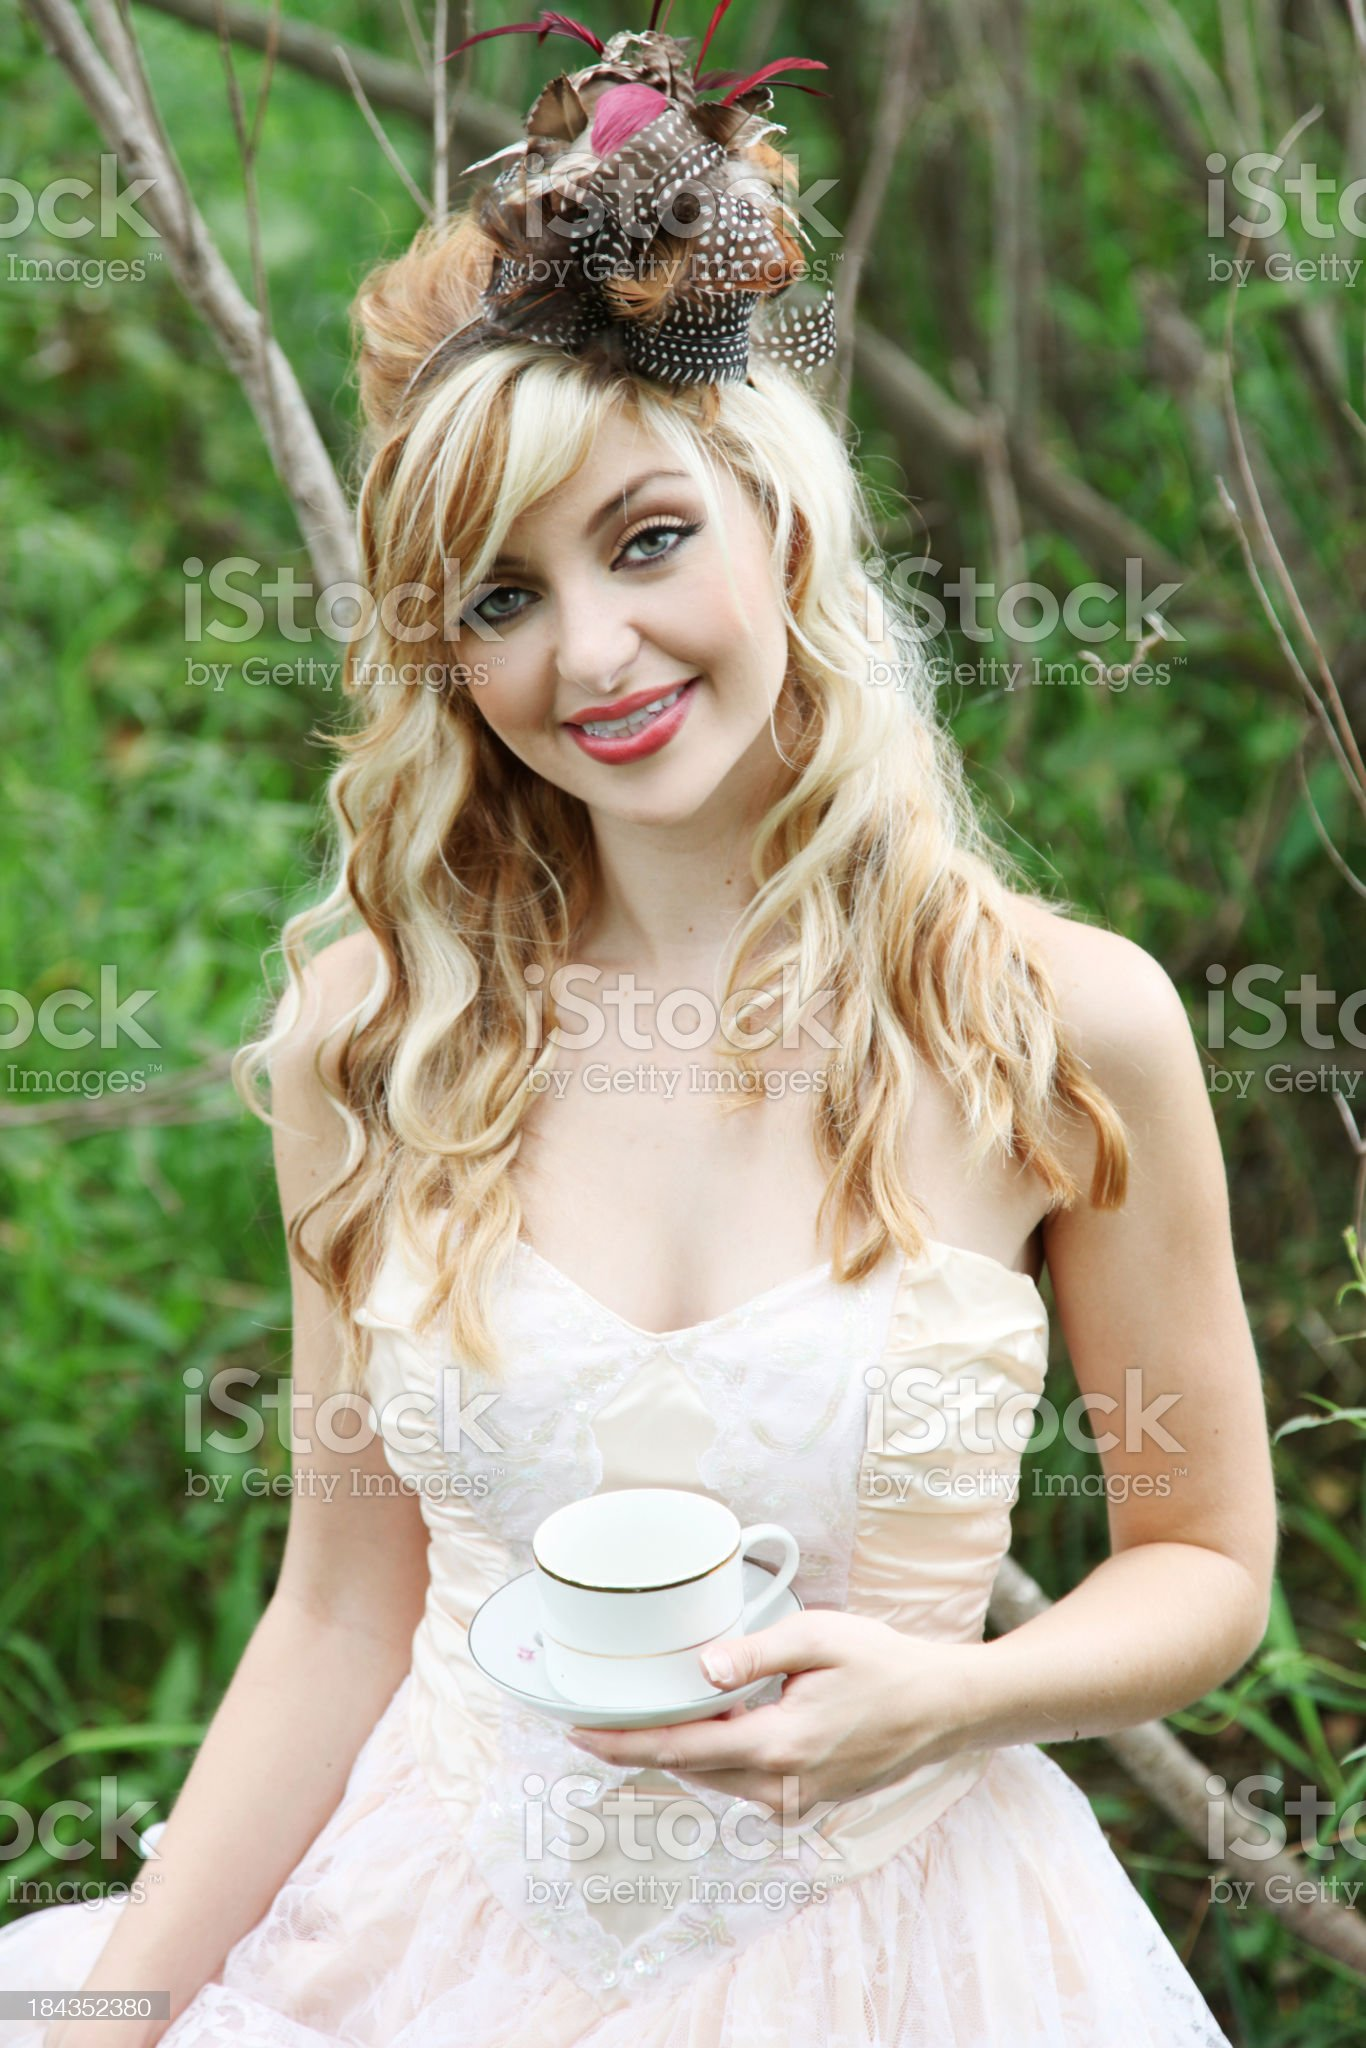 Outdoor woman with teacup royalty-free stock photo